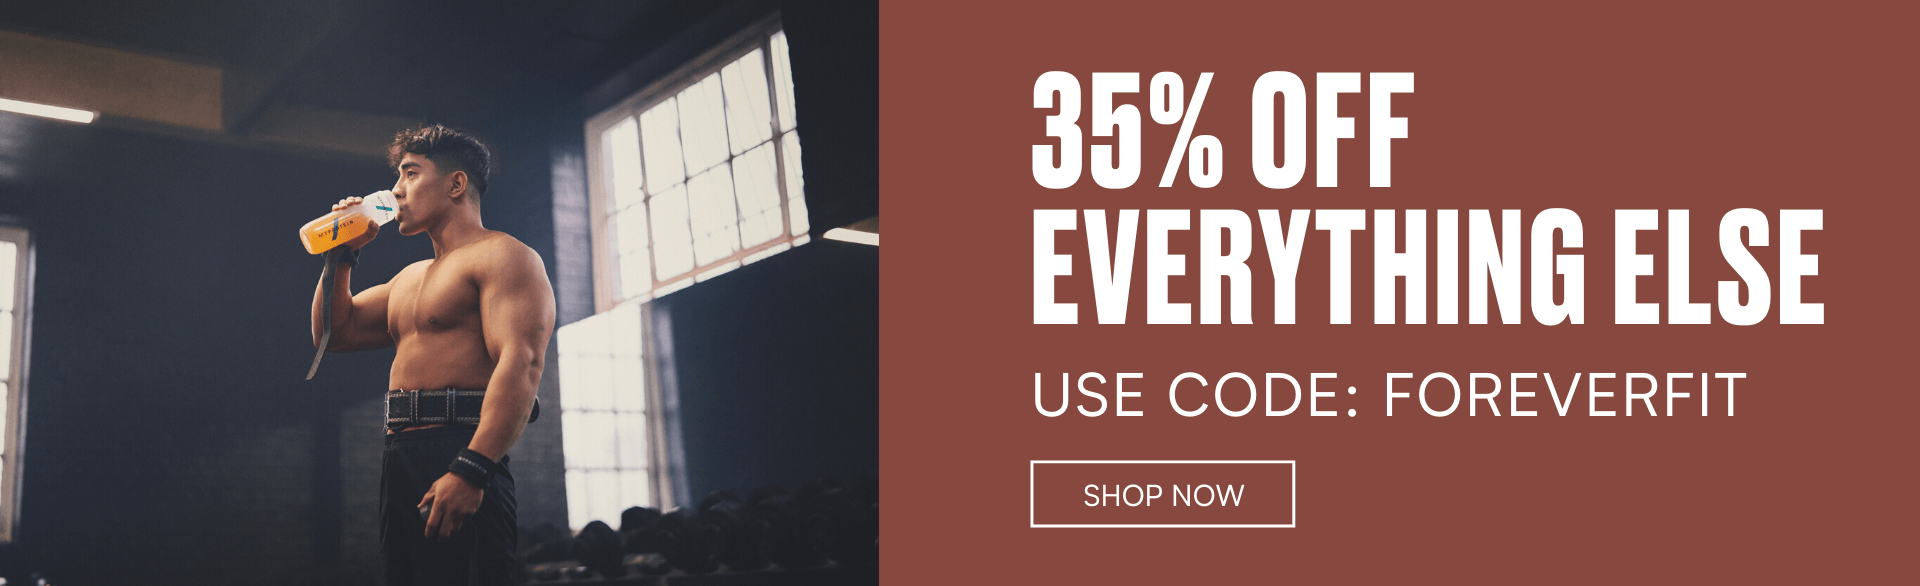 35% OFF Everything ELse